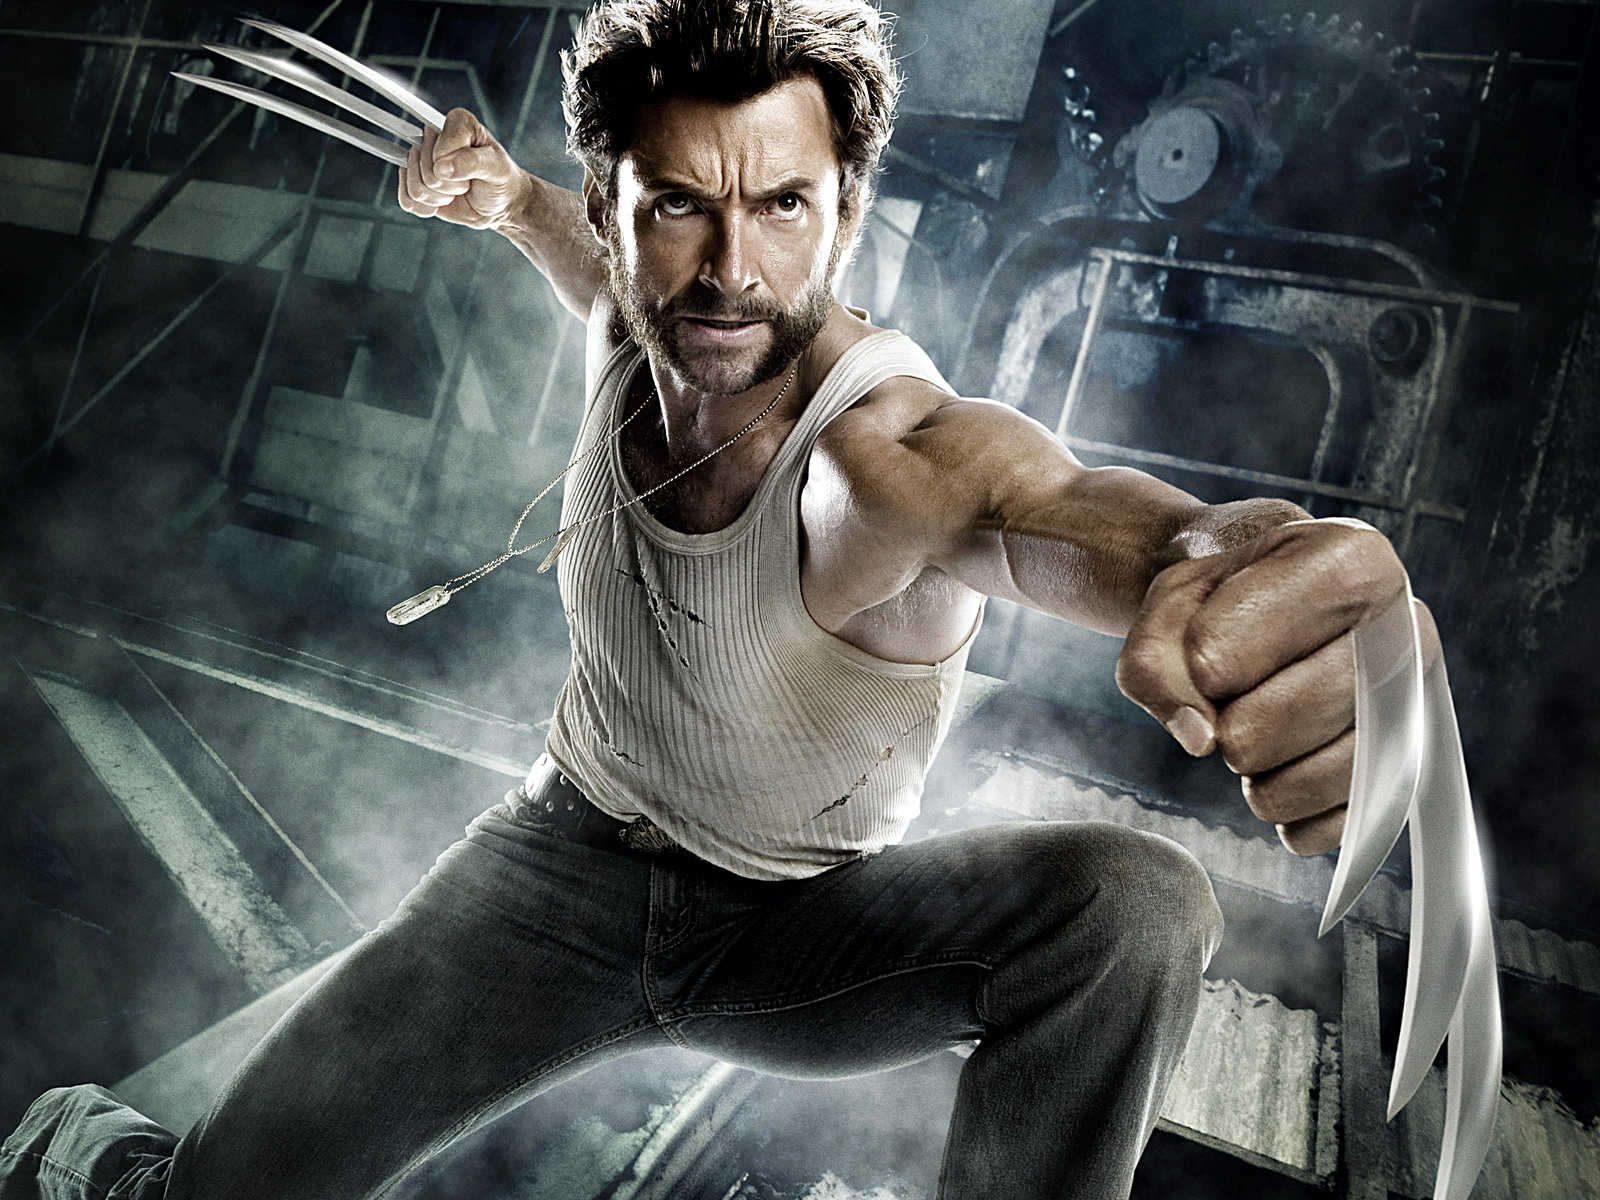 hugh jackman in the wolverine wallpapers - Hugh Jackman Wolverine Wallpapers Wallpaper Cave